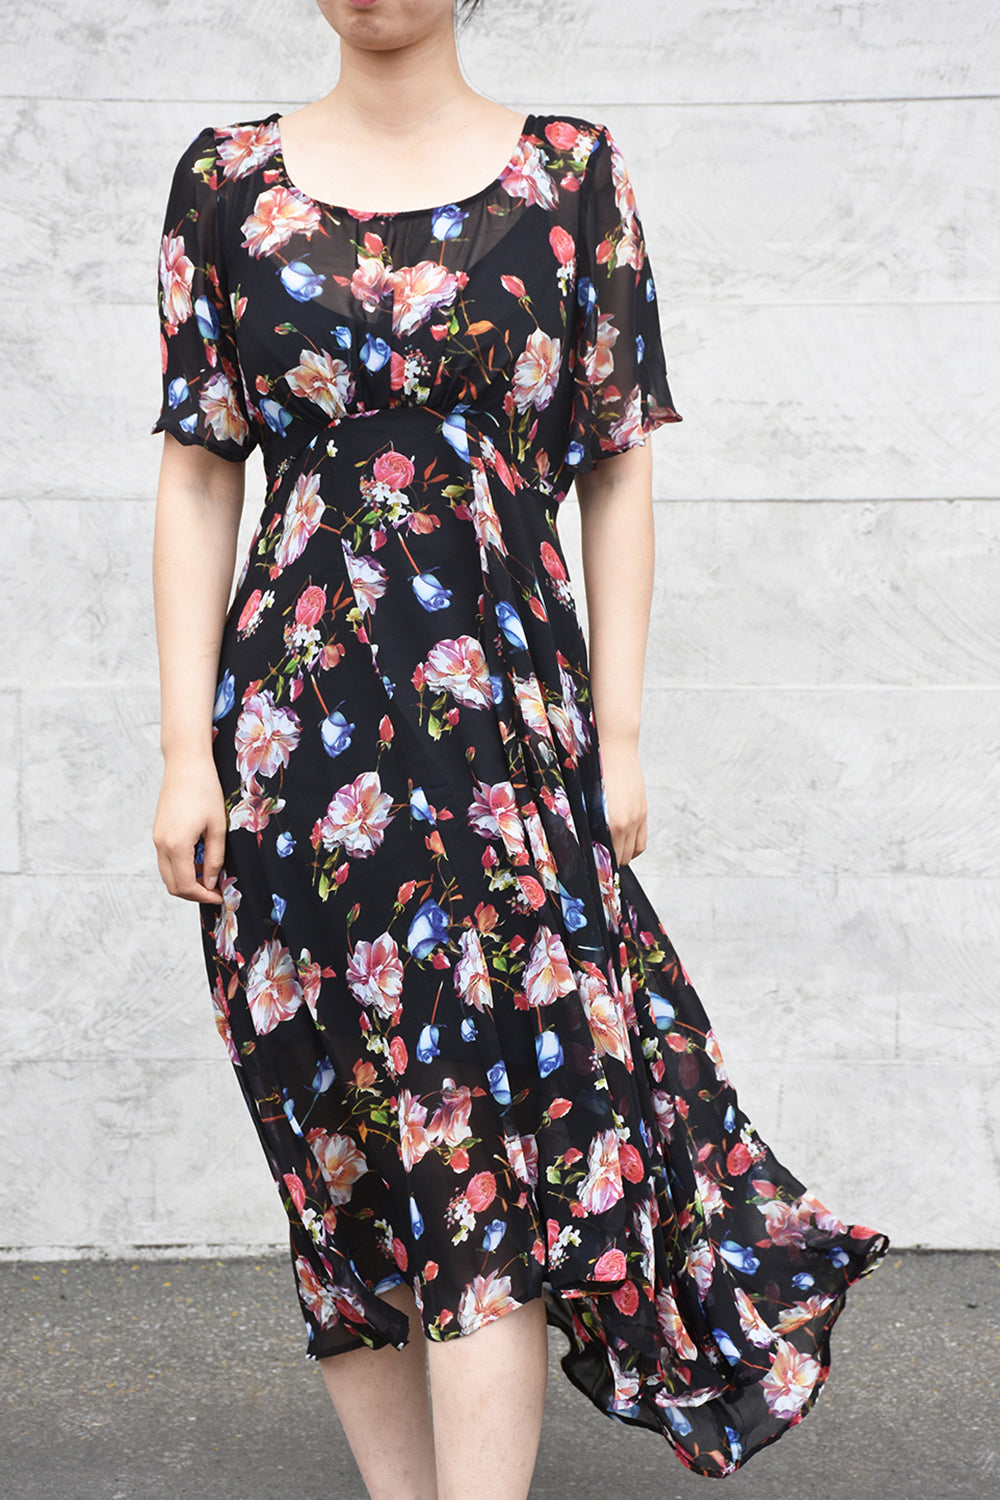 Down Town Dress - Black Rose